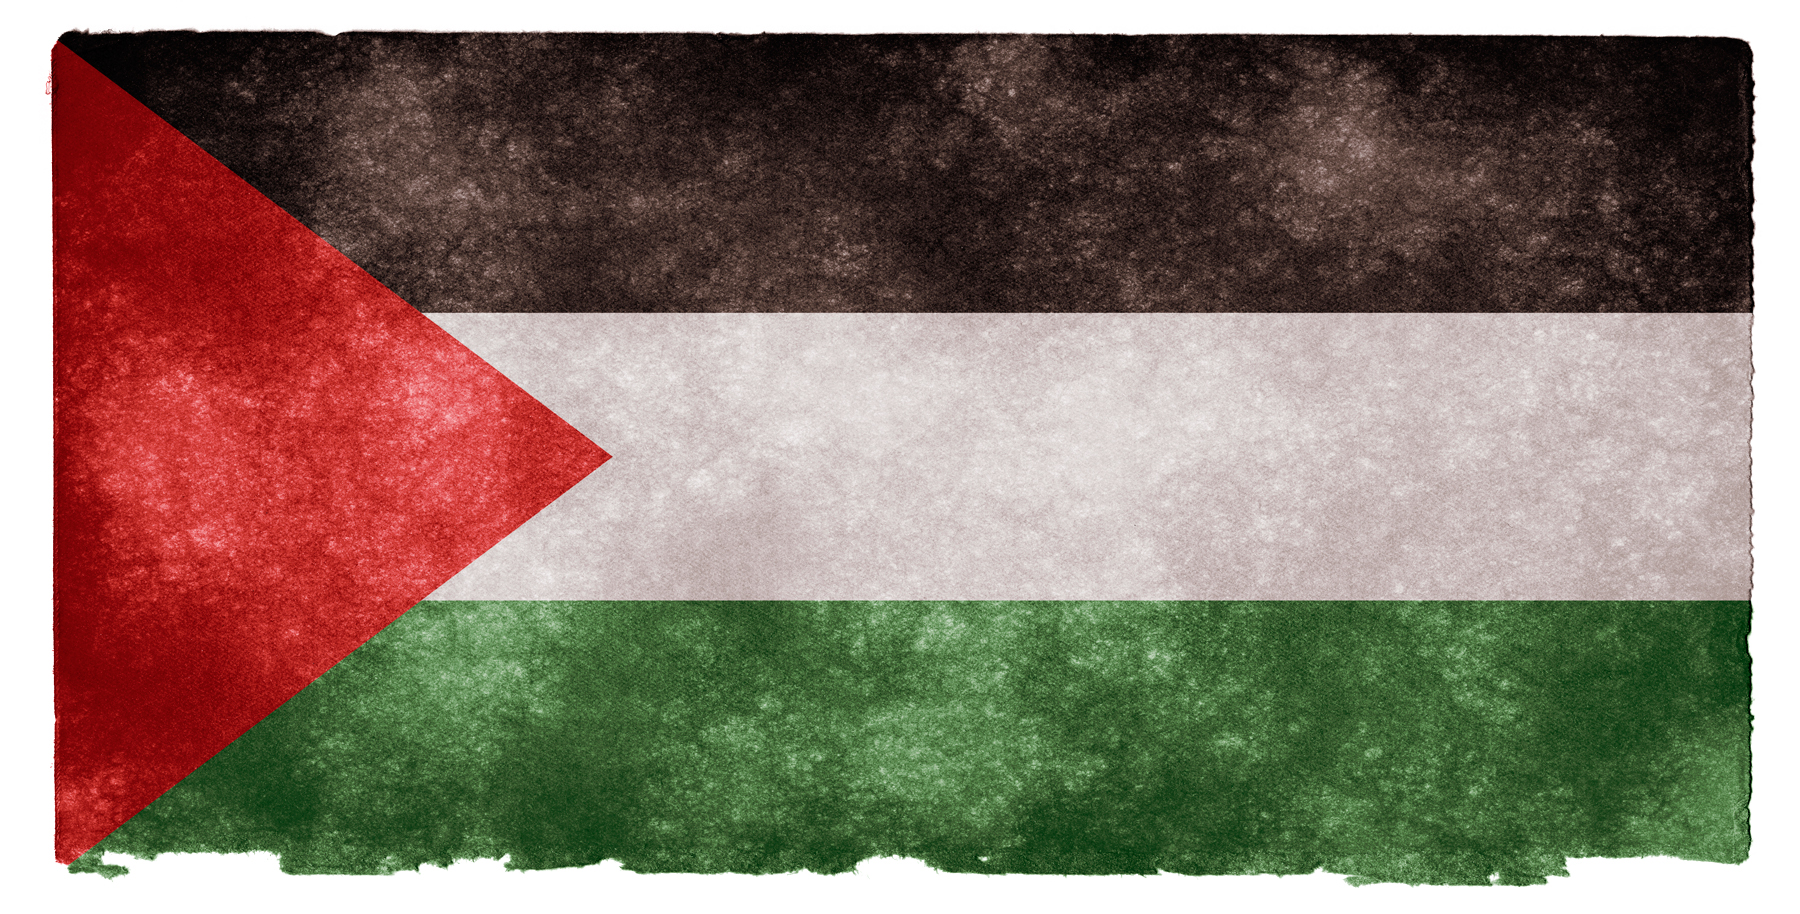 Palestine Grunge Flag, Aged, Red, Middle-east, Middle-eastern, HQ Photo